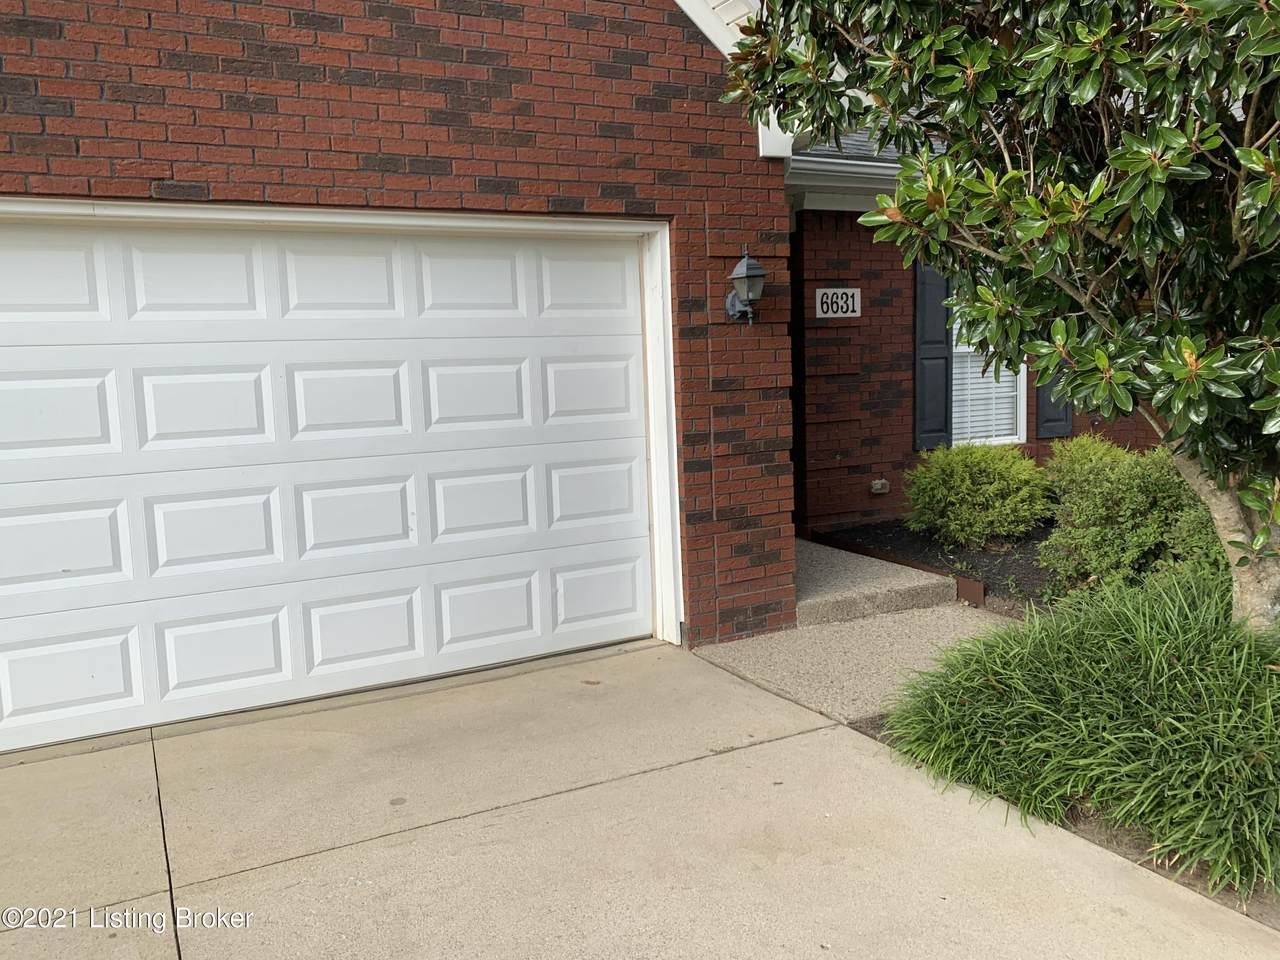 6631 Woods Mill Dr - Photo 1